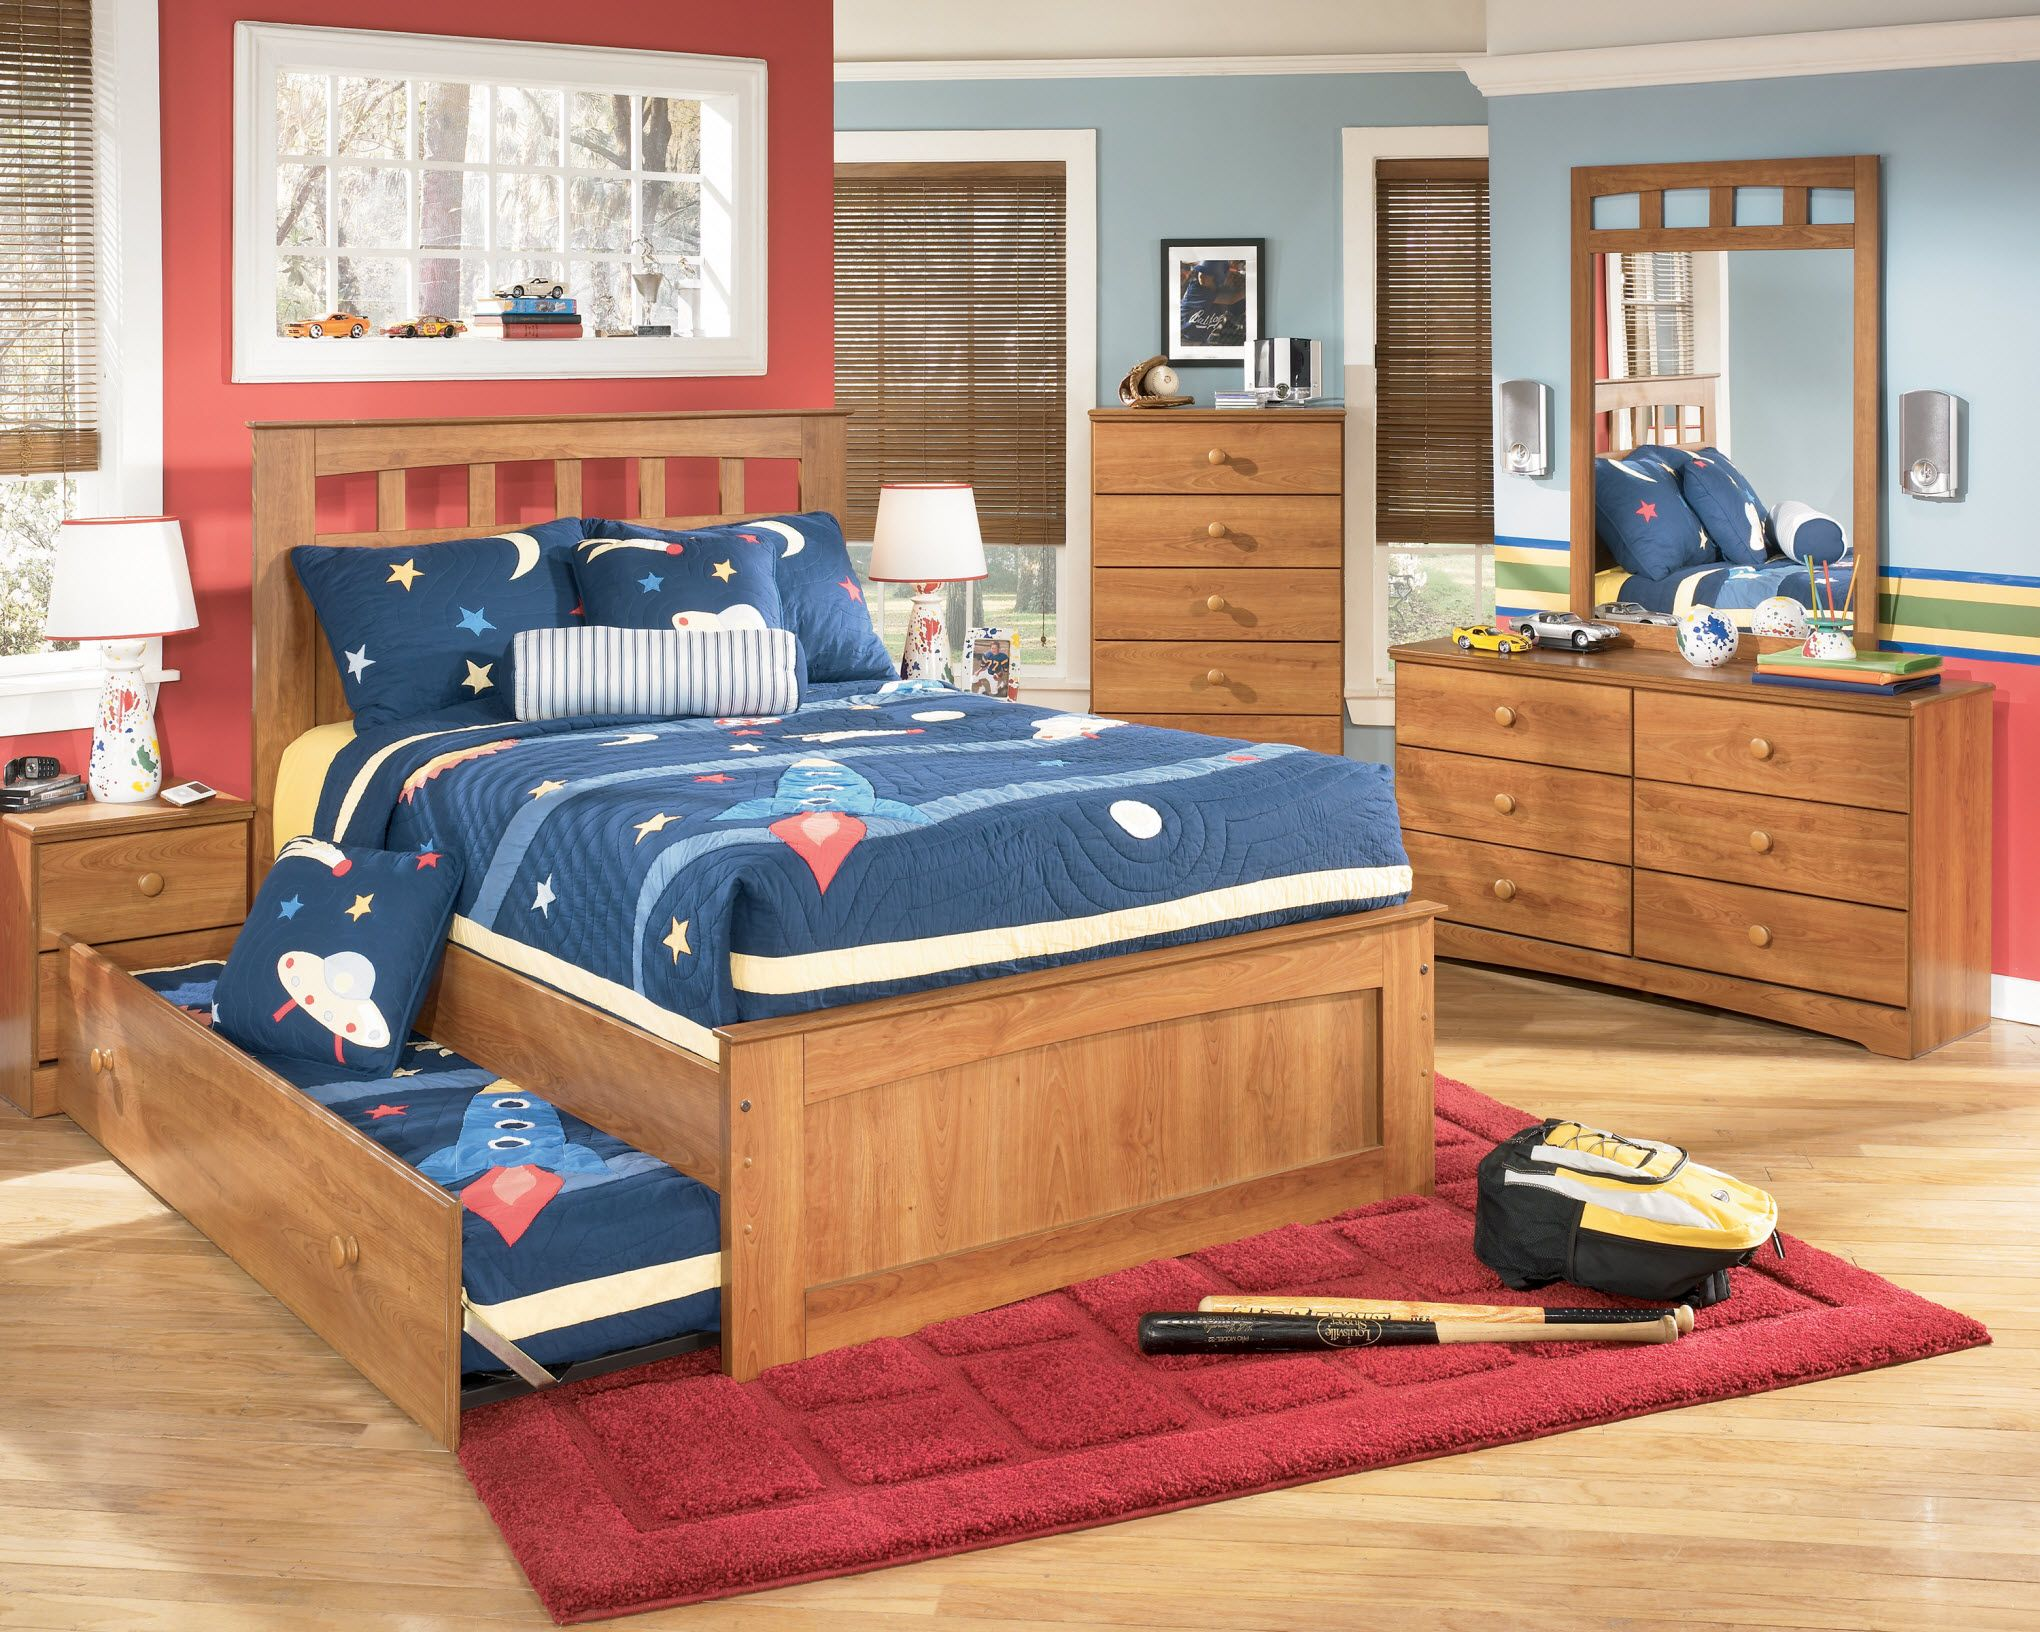 16 Cool Boys Bedroom Sets Ideas Ome Speak Boys Bedroom Sets Boys Bedroom  Sets With Regard To Really Encourage. Bedroom Decor Red Fluffy Carpet Tiles With Corner Storage Cabinet